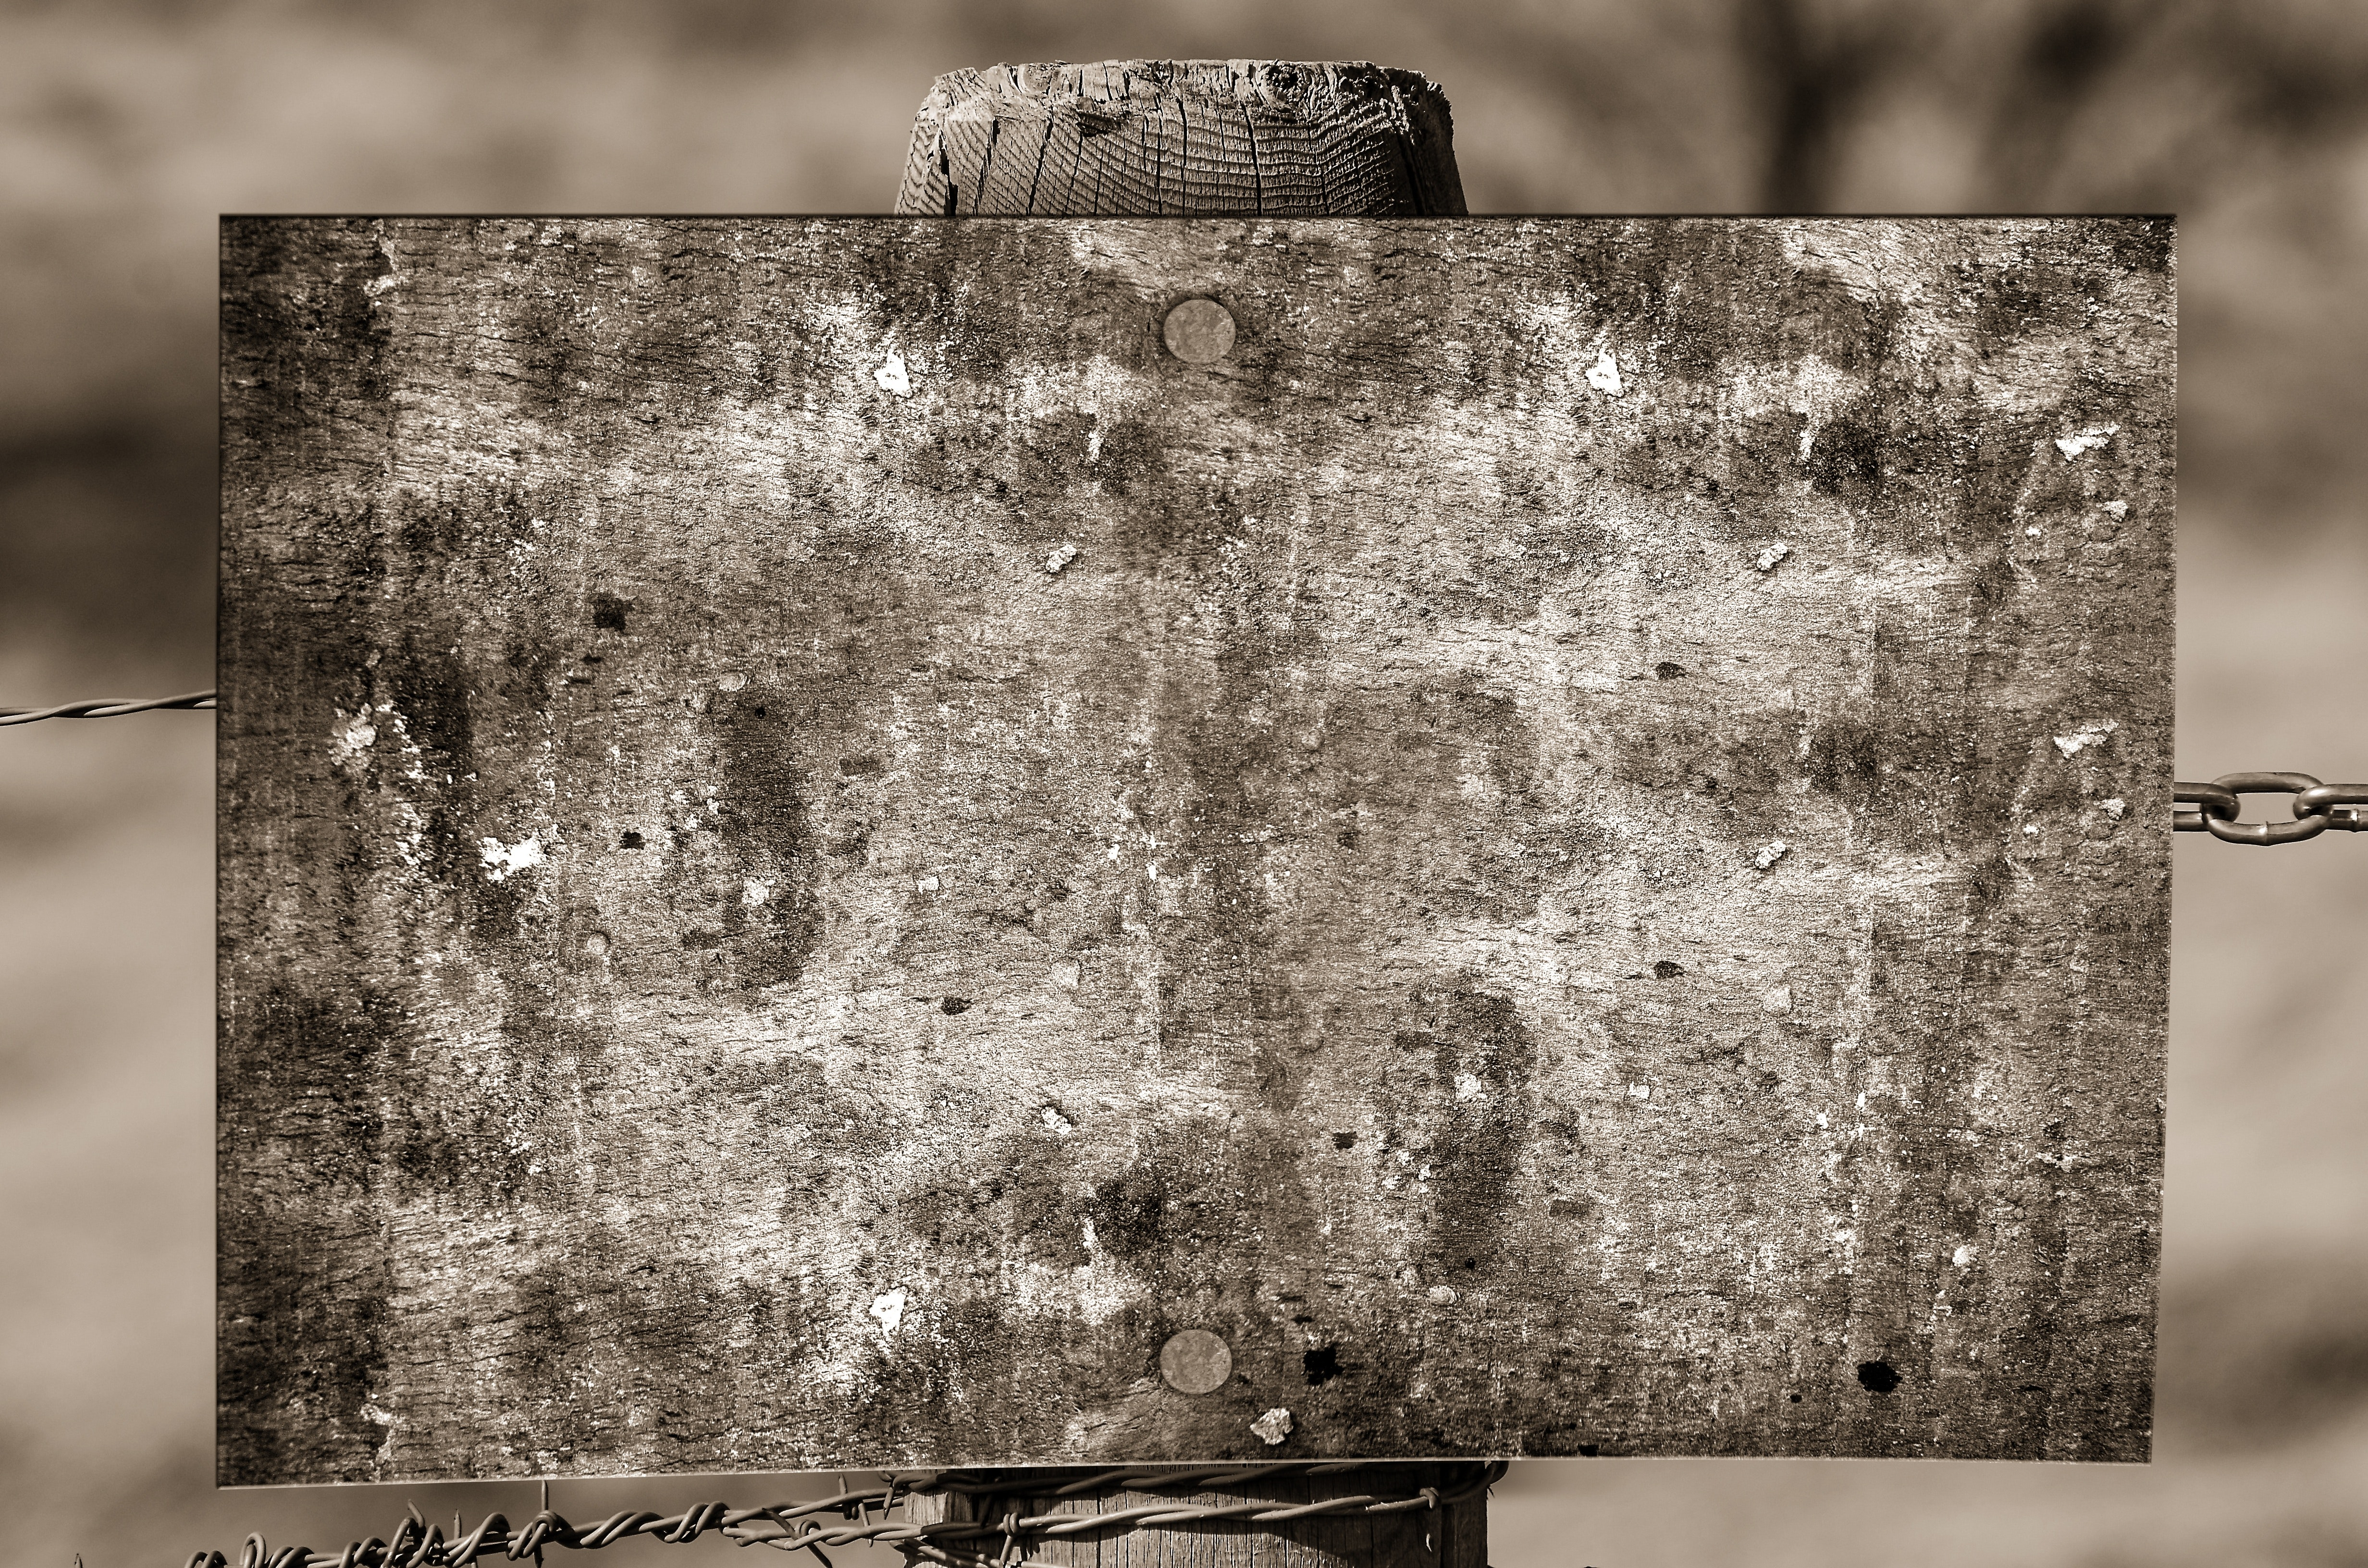 Grayscale photography of brown wooden board on fence